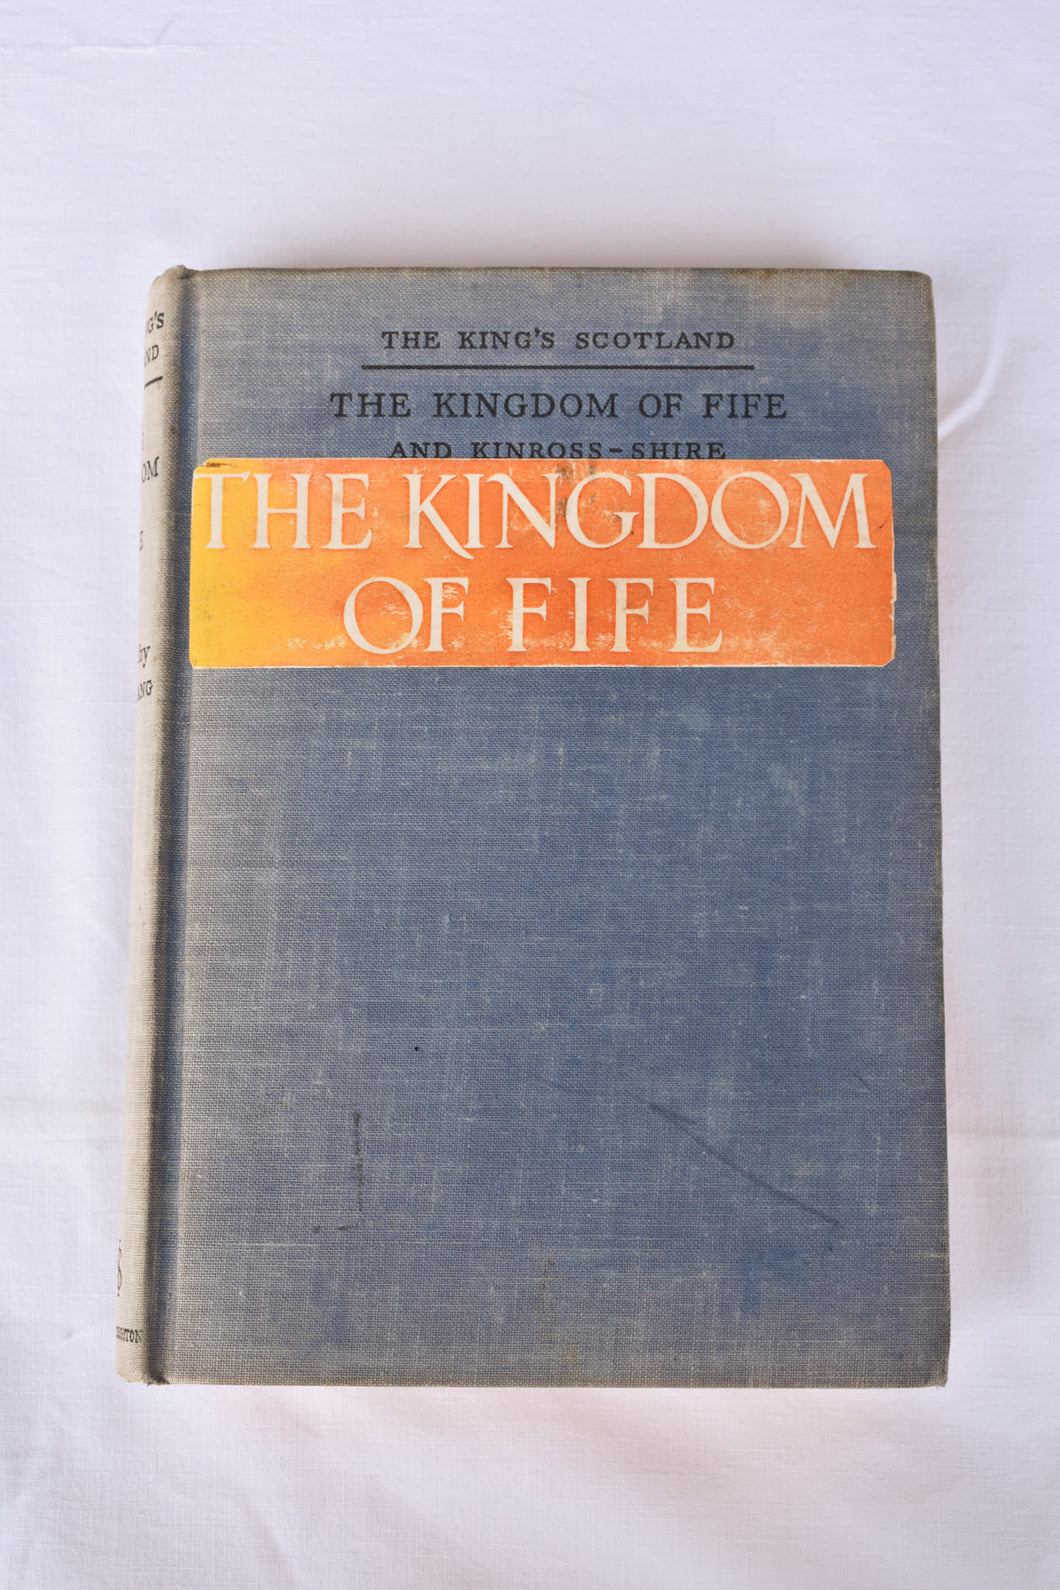 The King's Scotland: The Kingdom of Fife